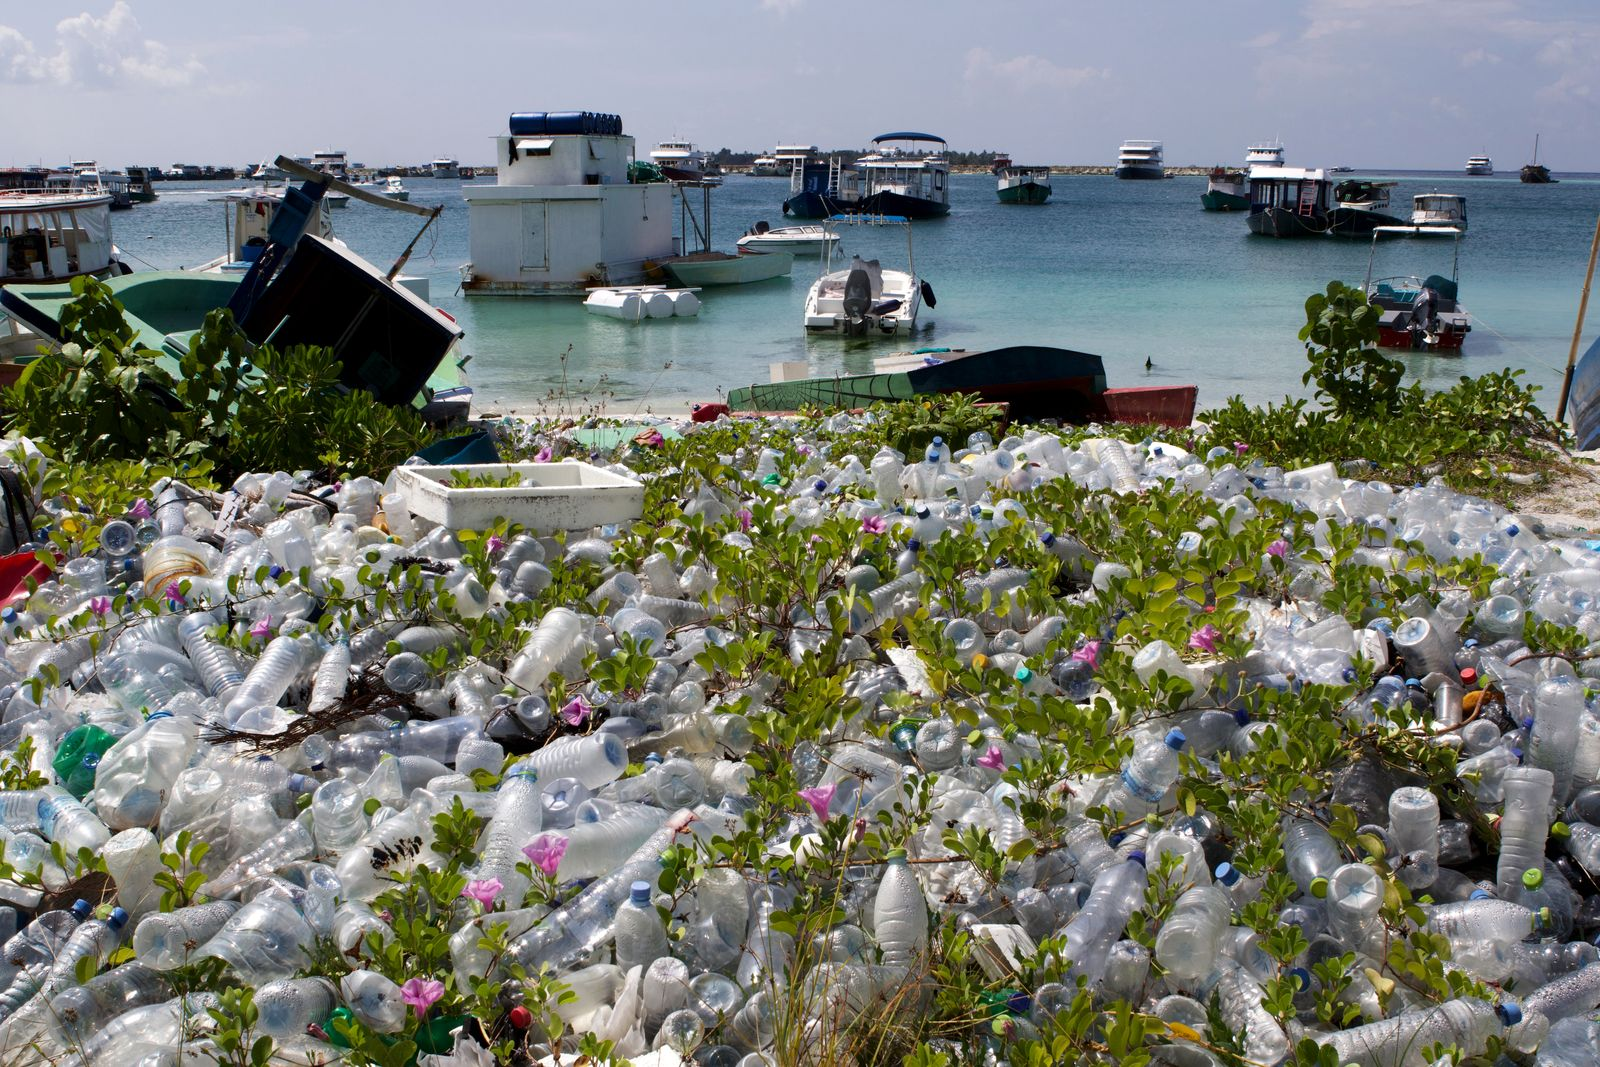 Müllproblem in Hulhumale 1